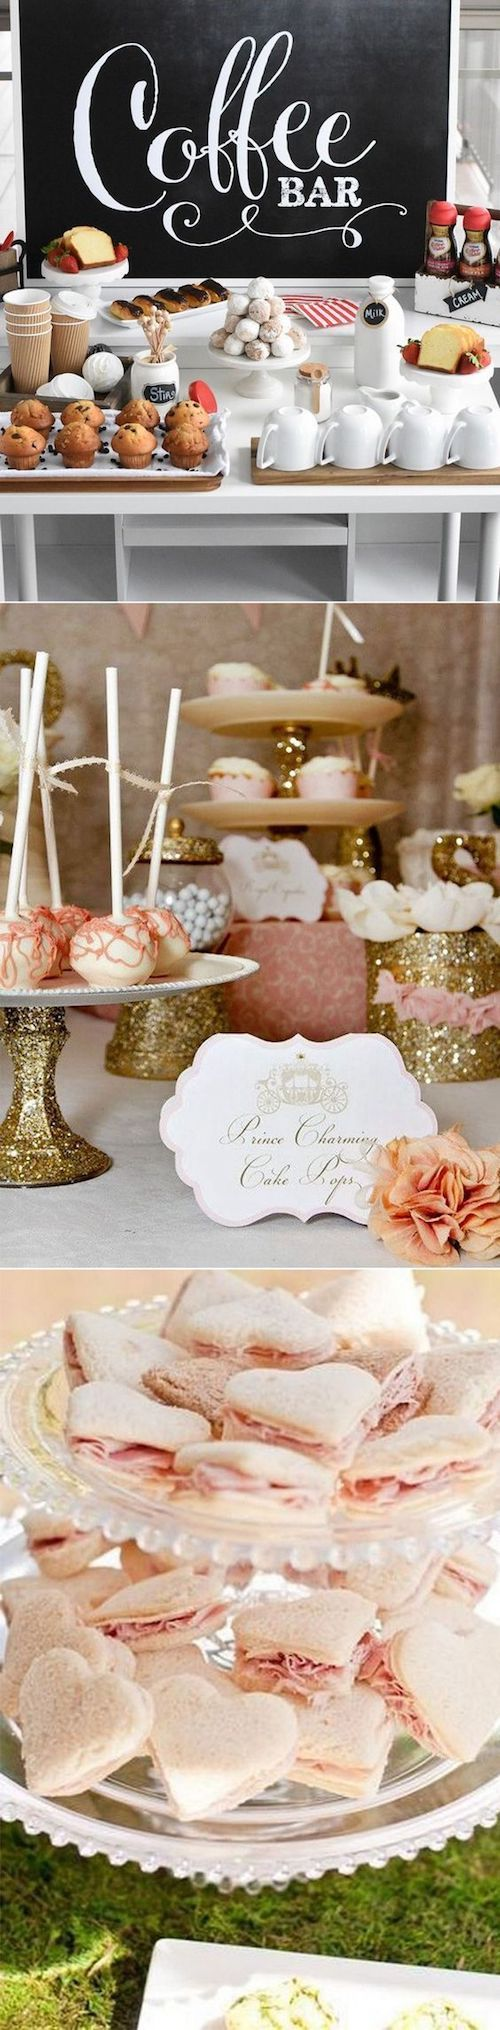 ae6973fc877 You are sure to impress the bride with these rad bridal shower party ideas.